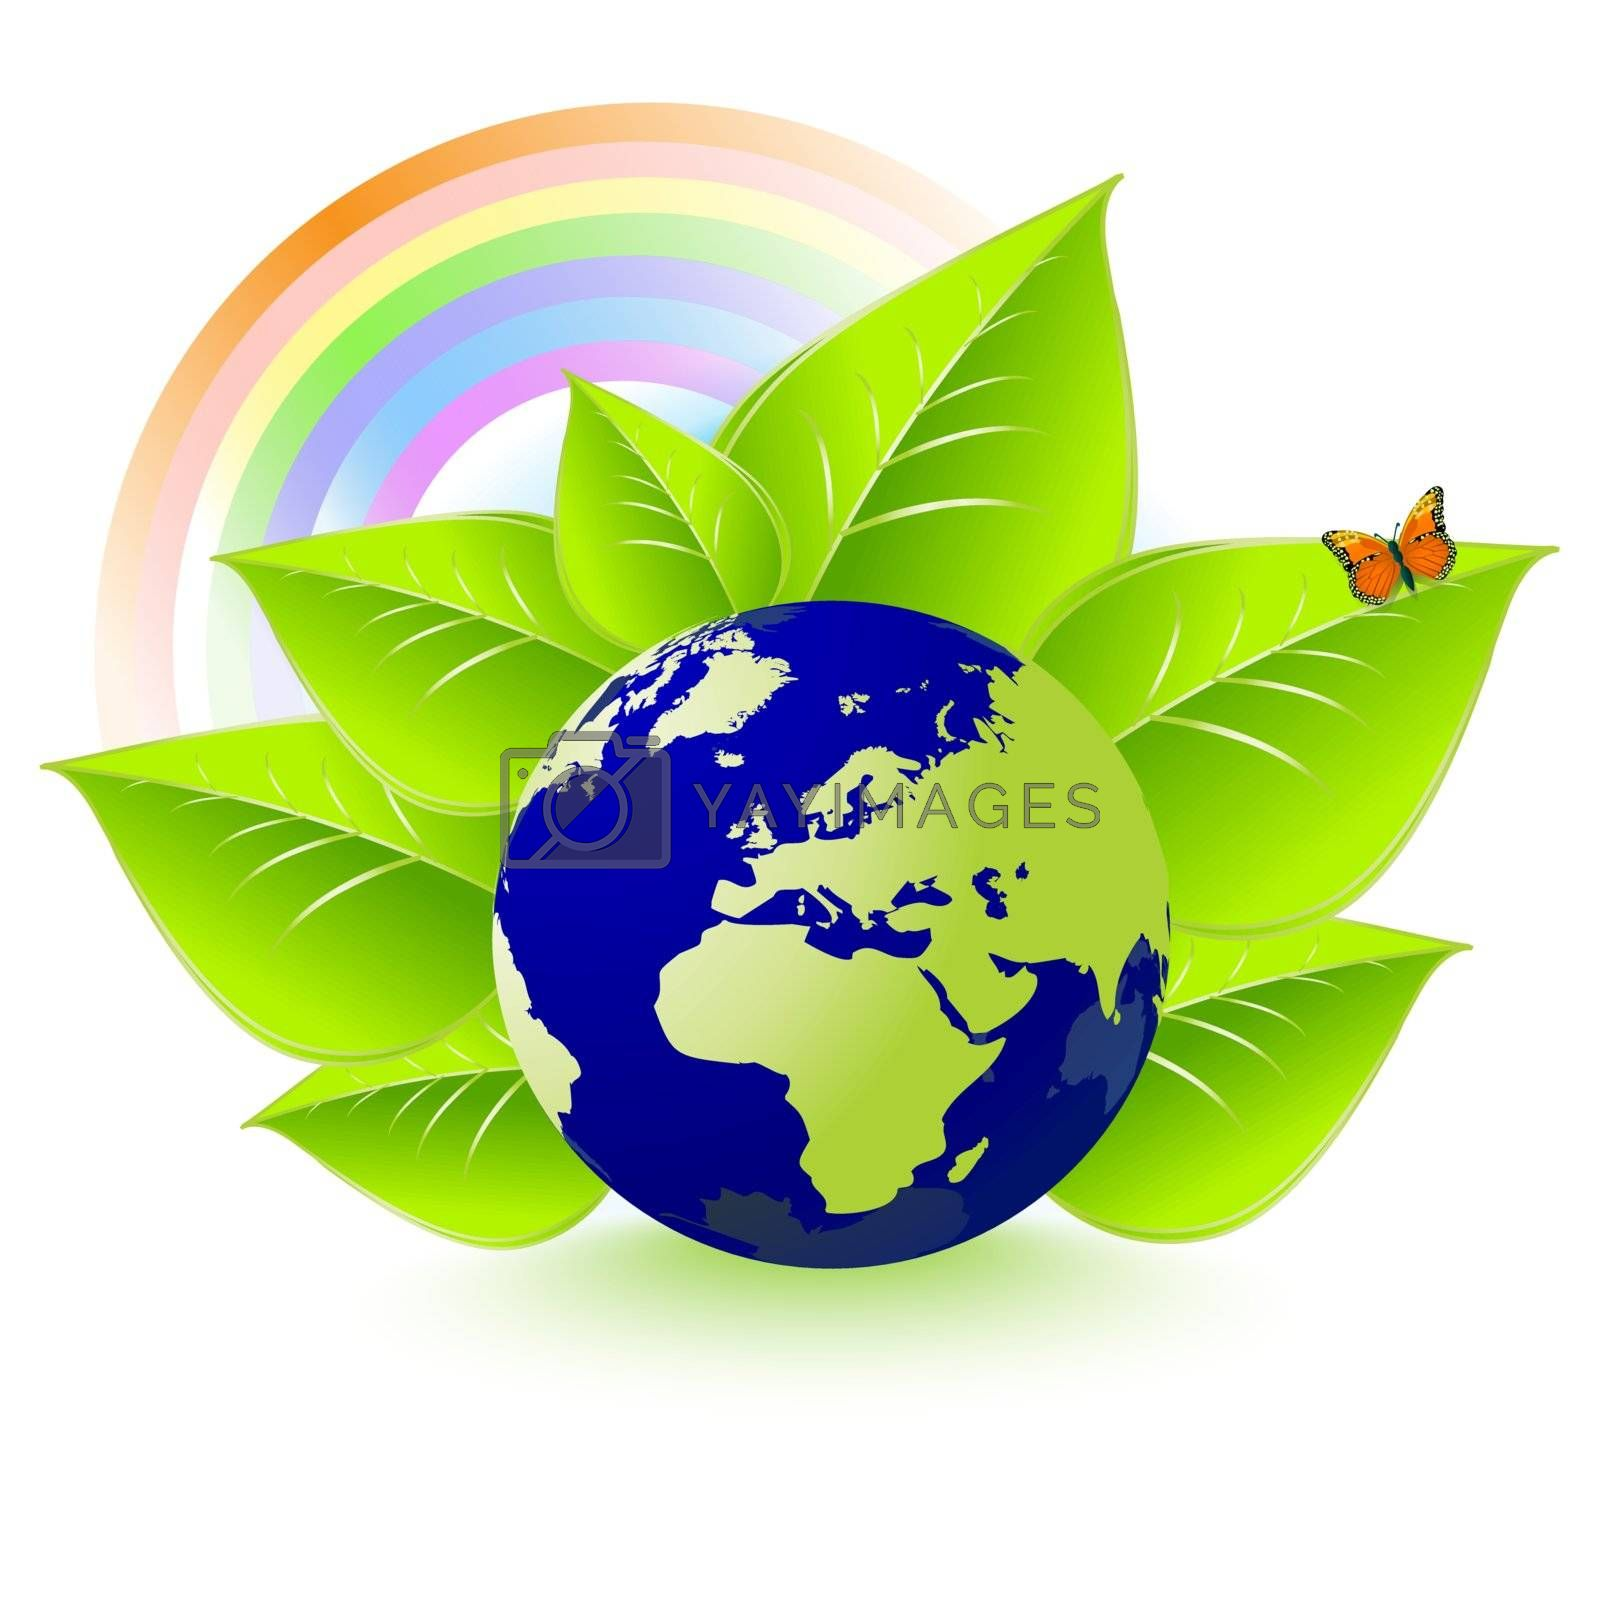 Eco Earth, leaves, rainbows, butterflies and environment